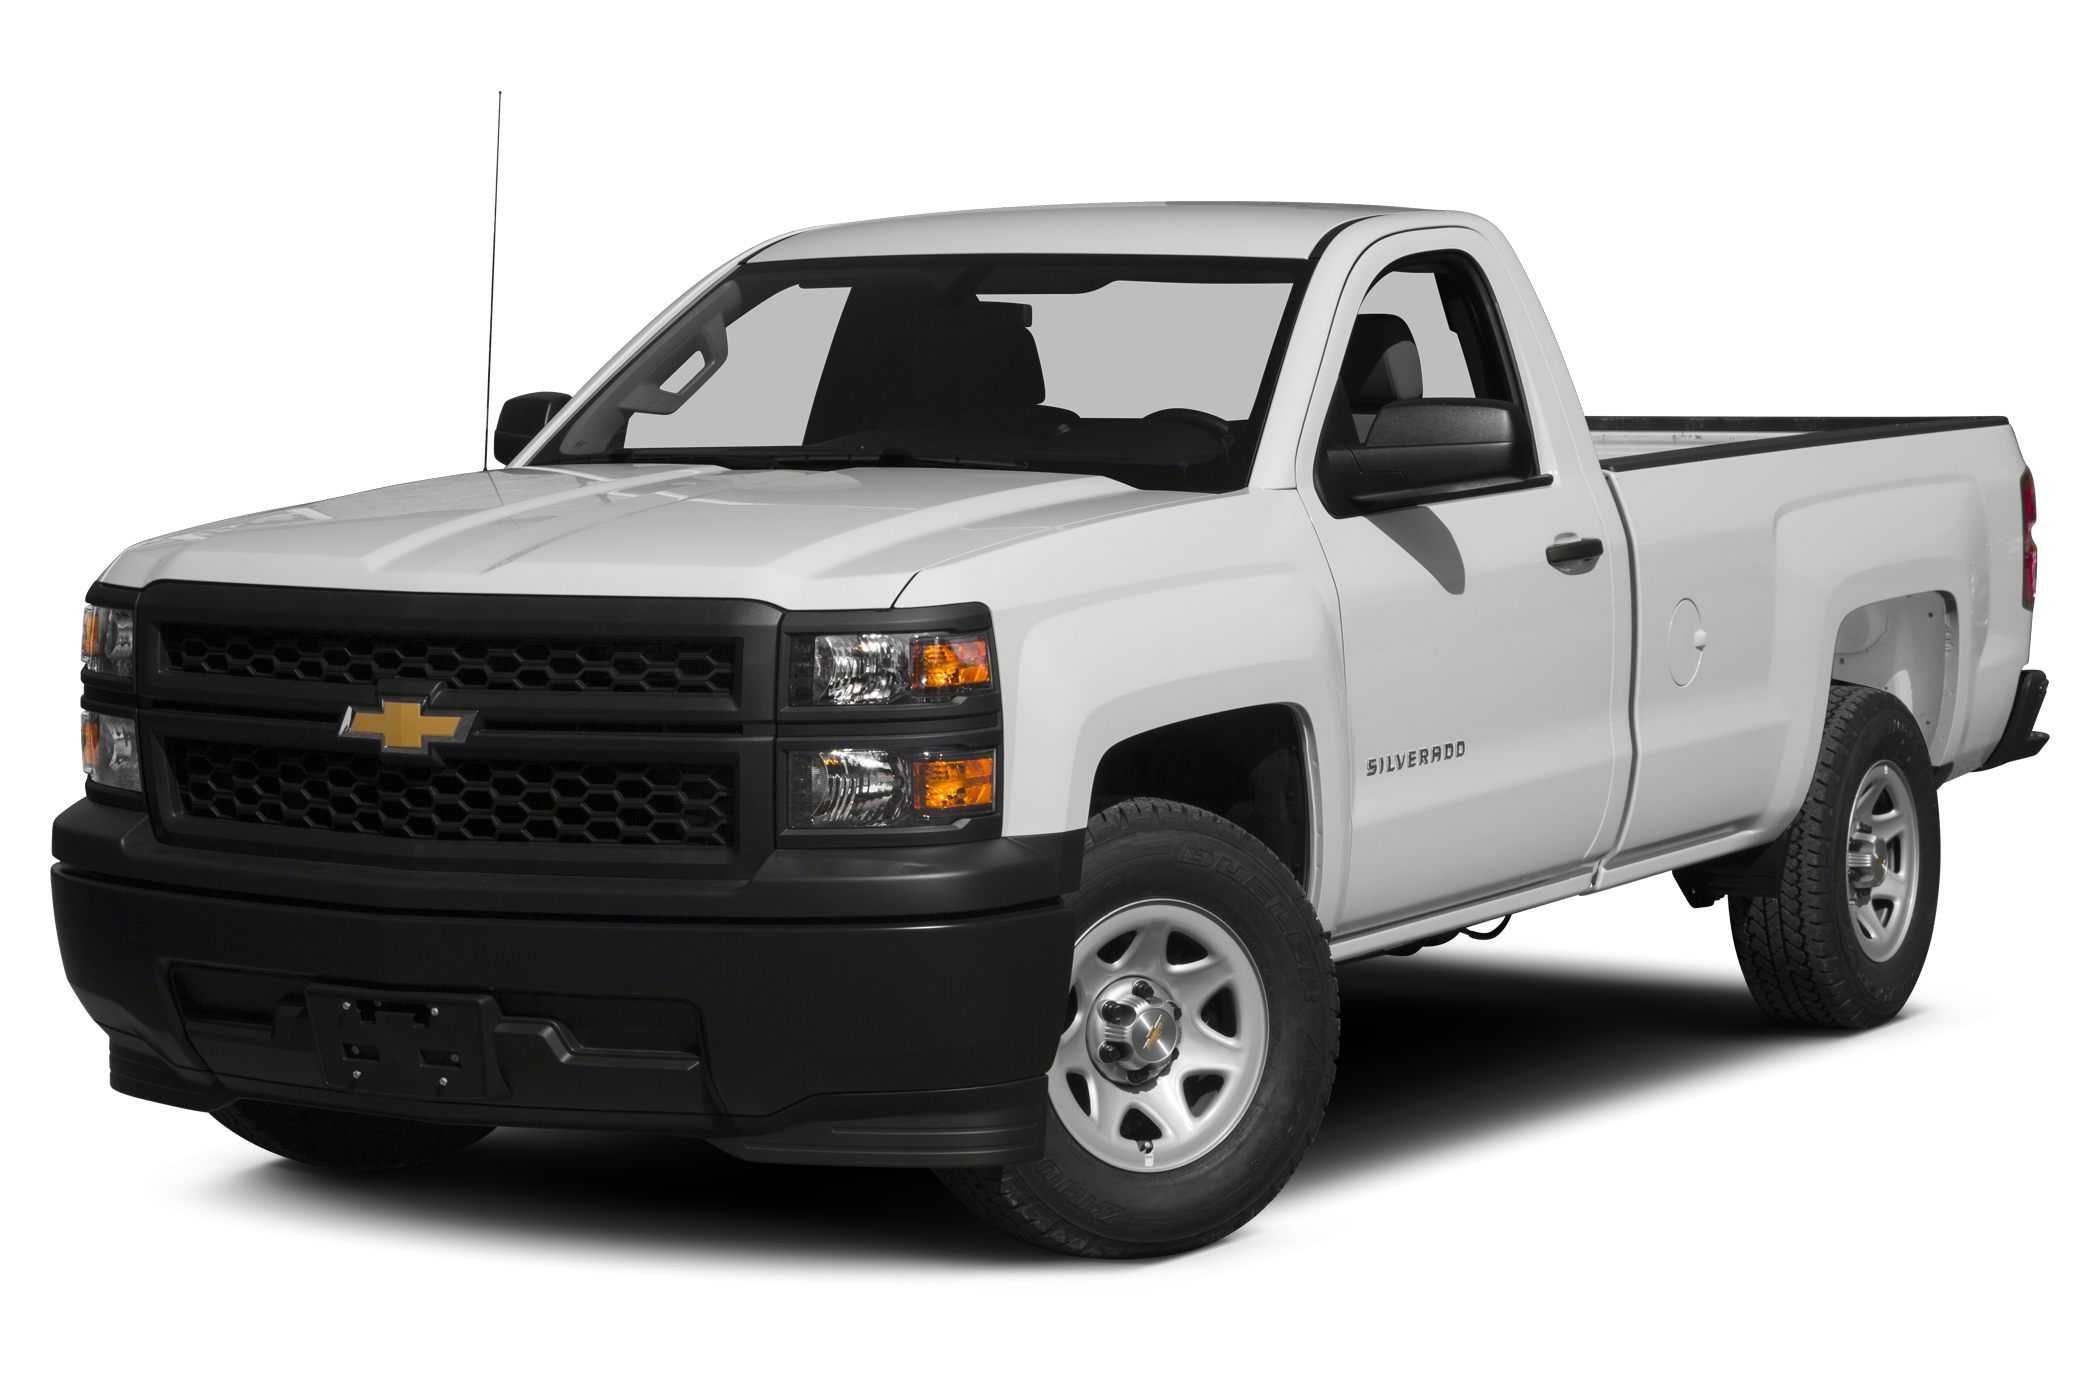 2015 Chevrolet Silverado 1500 1LT Crew Cab Pickup for sale in Milford for $46,690 with 5 miles